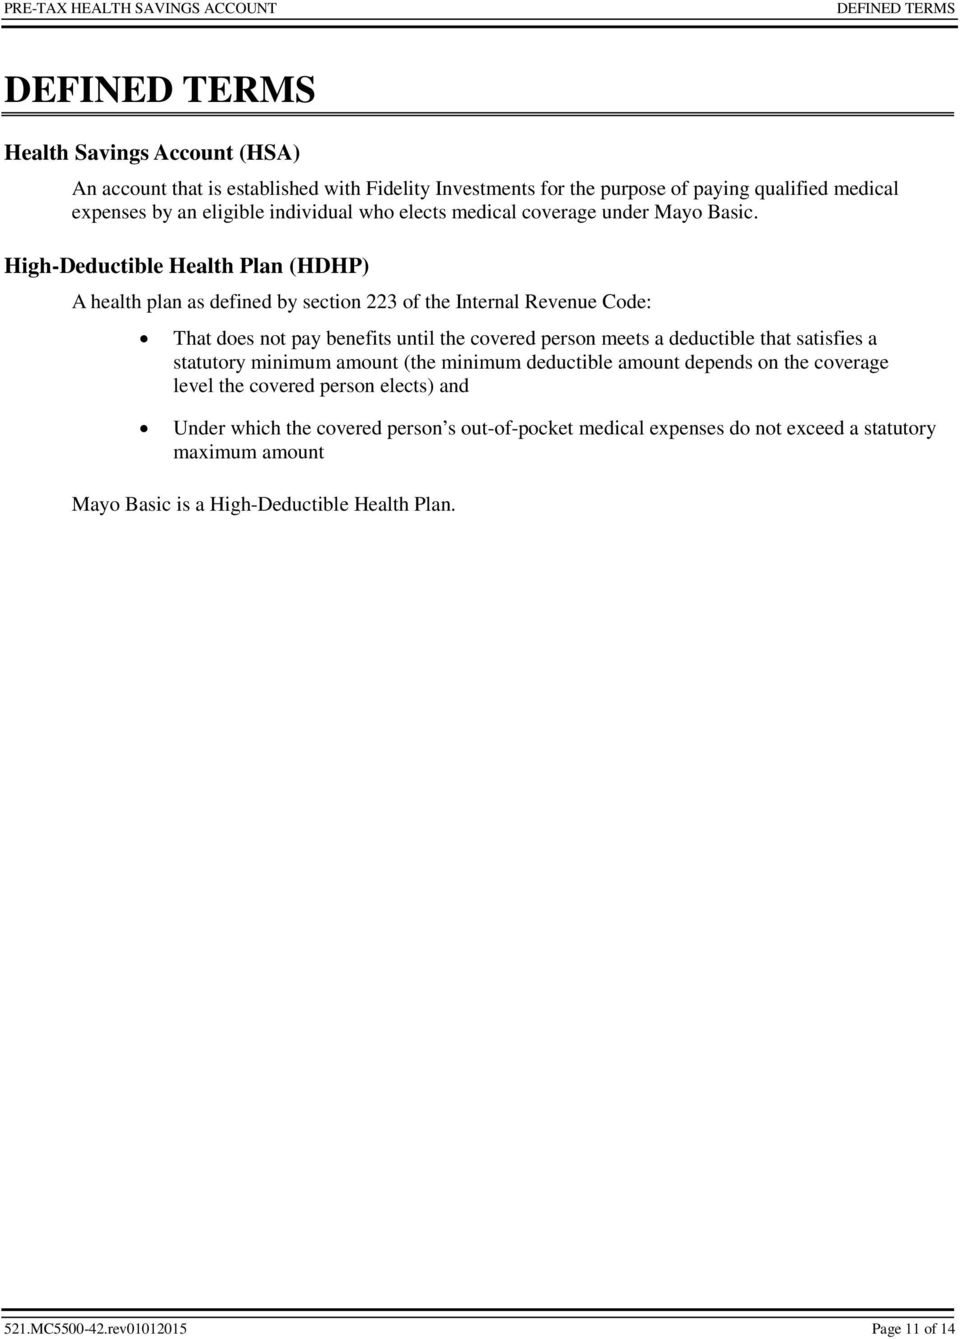 High-Deductible Health Plan (HDHP) A health plan as defined by section 223 of the Internal Revenue Code: That does not pay benefits until the covered person meets a deductible that